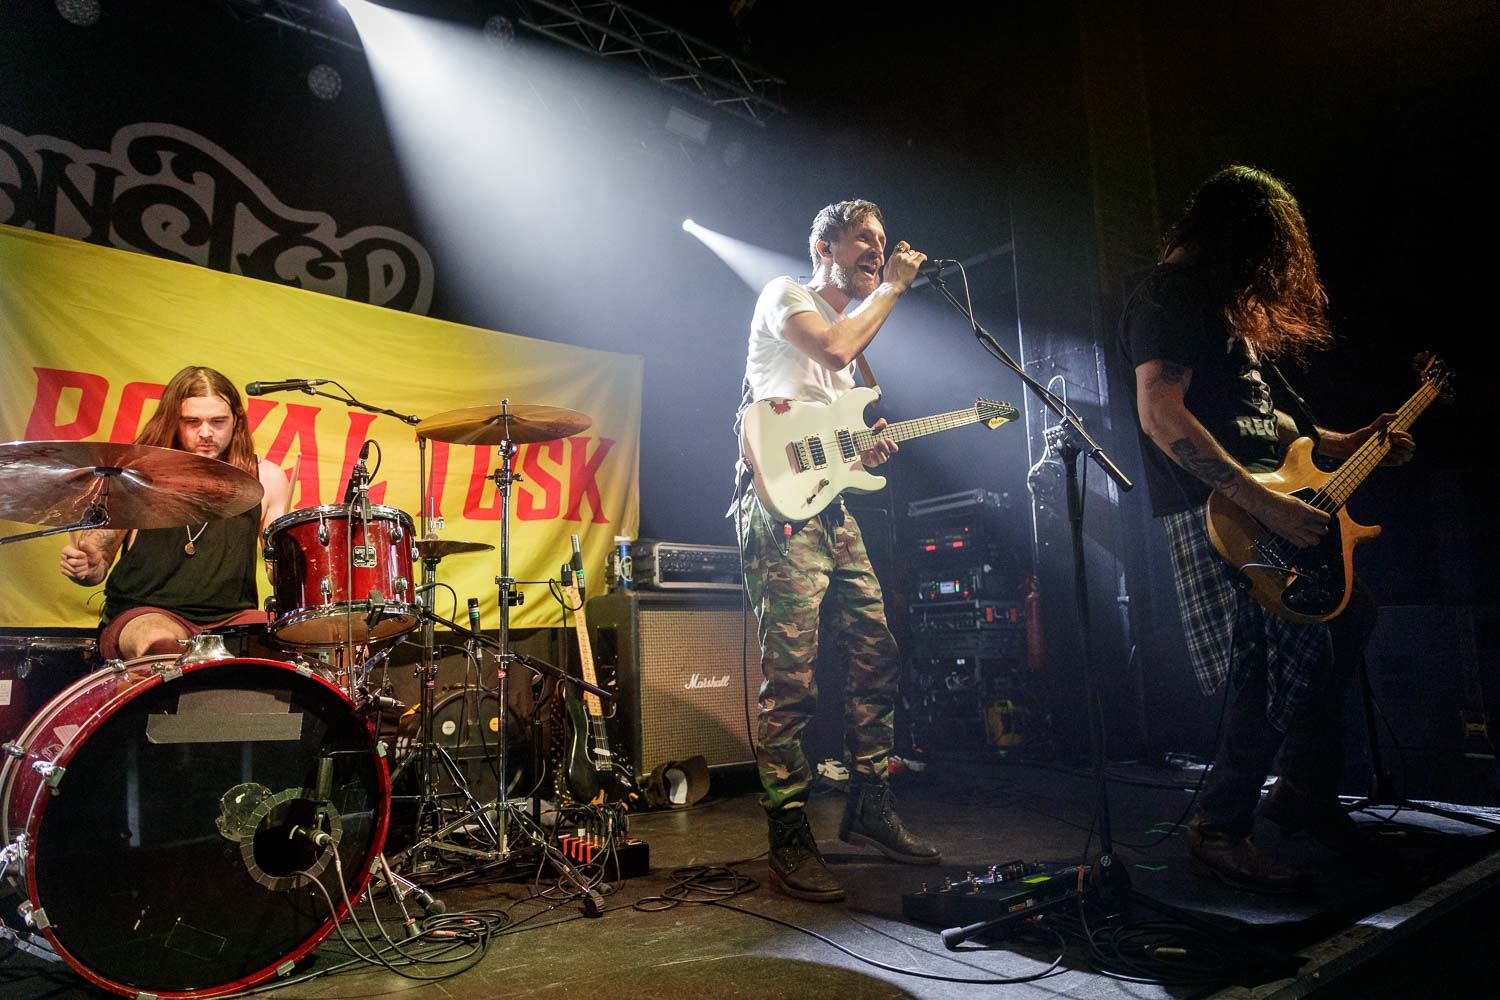 Royal Tusk at The Academy 2 in Manchester on April 20th 2019.